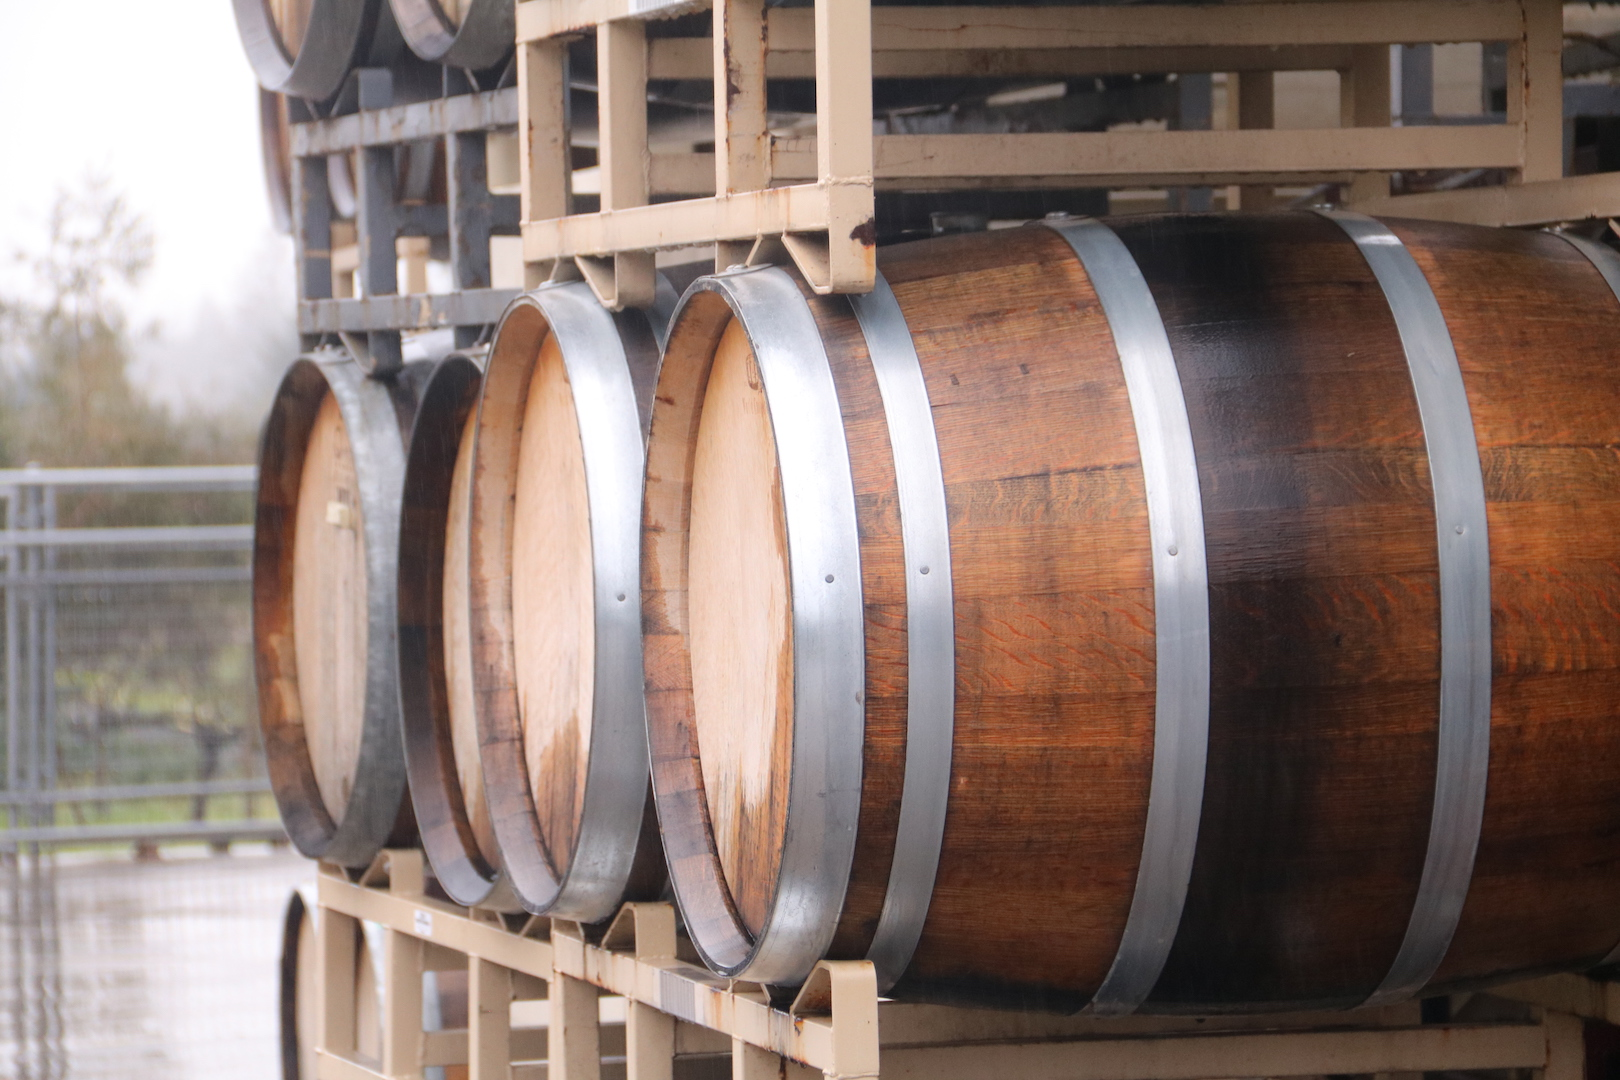 Wine barrels at SRJC's Shone Farm ready to be filled